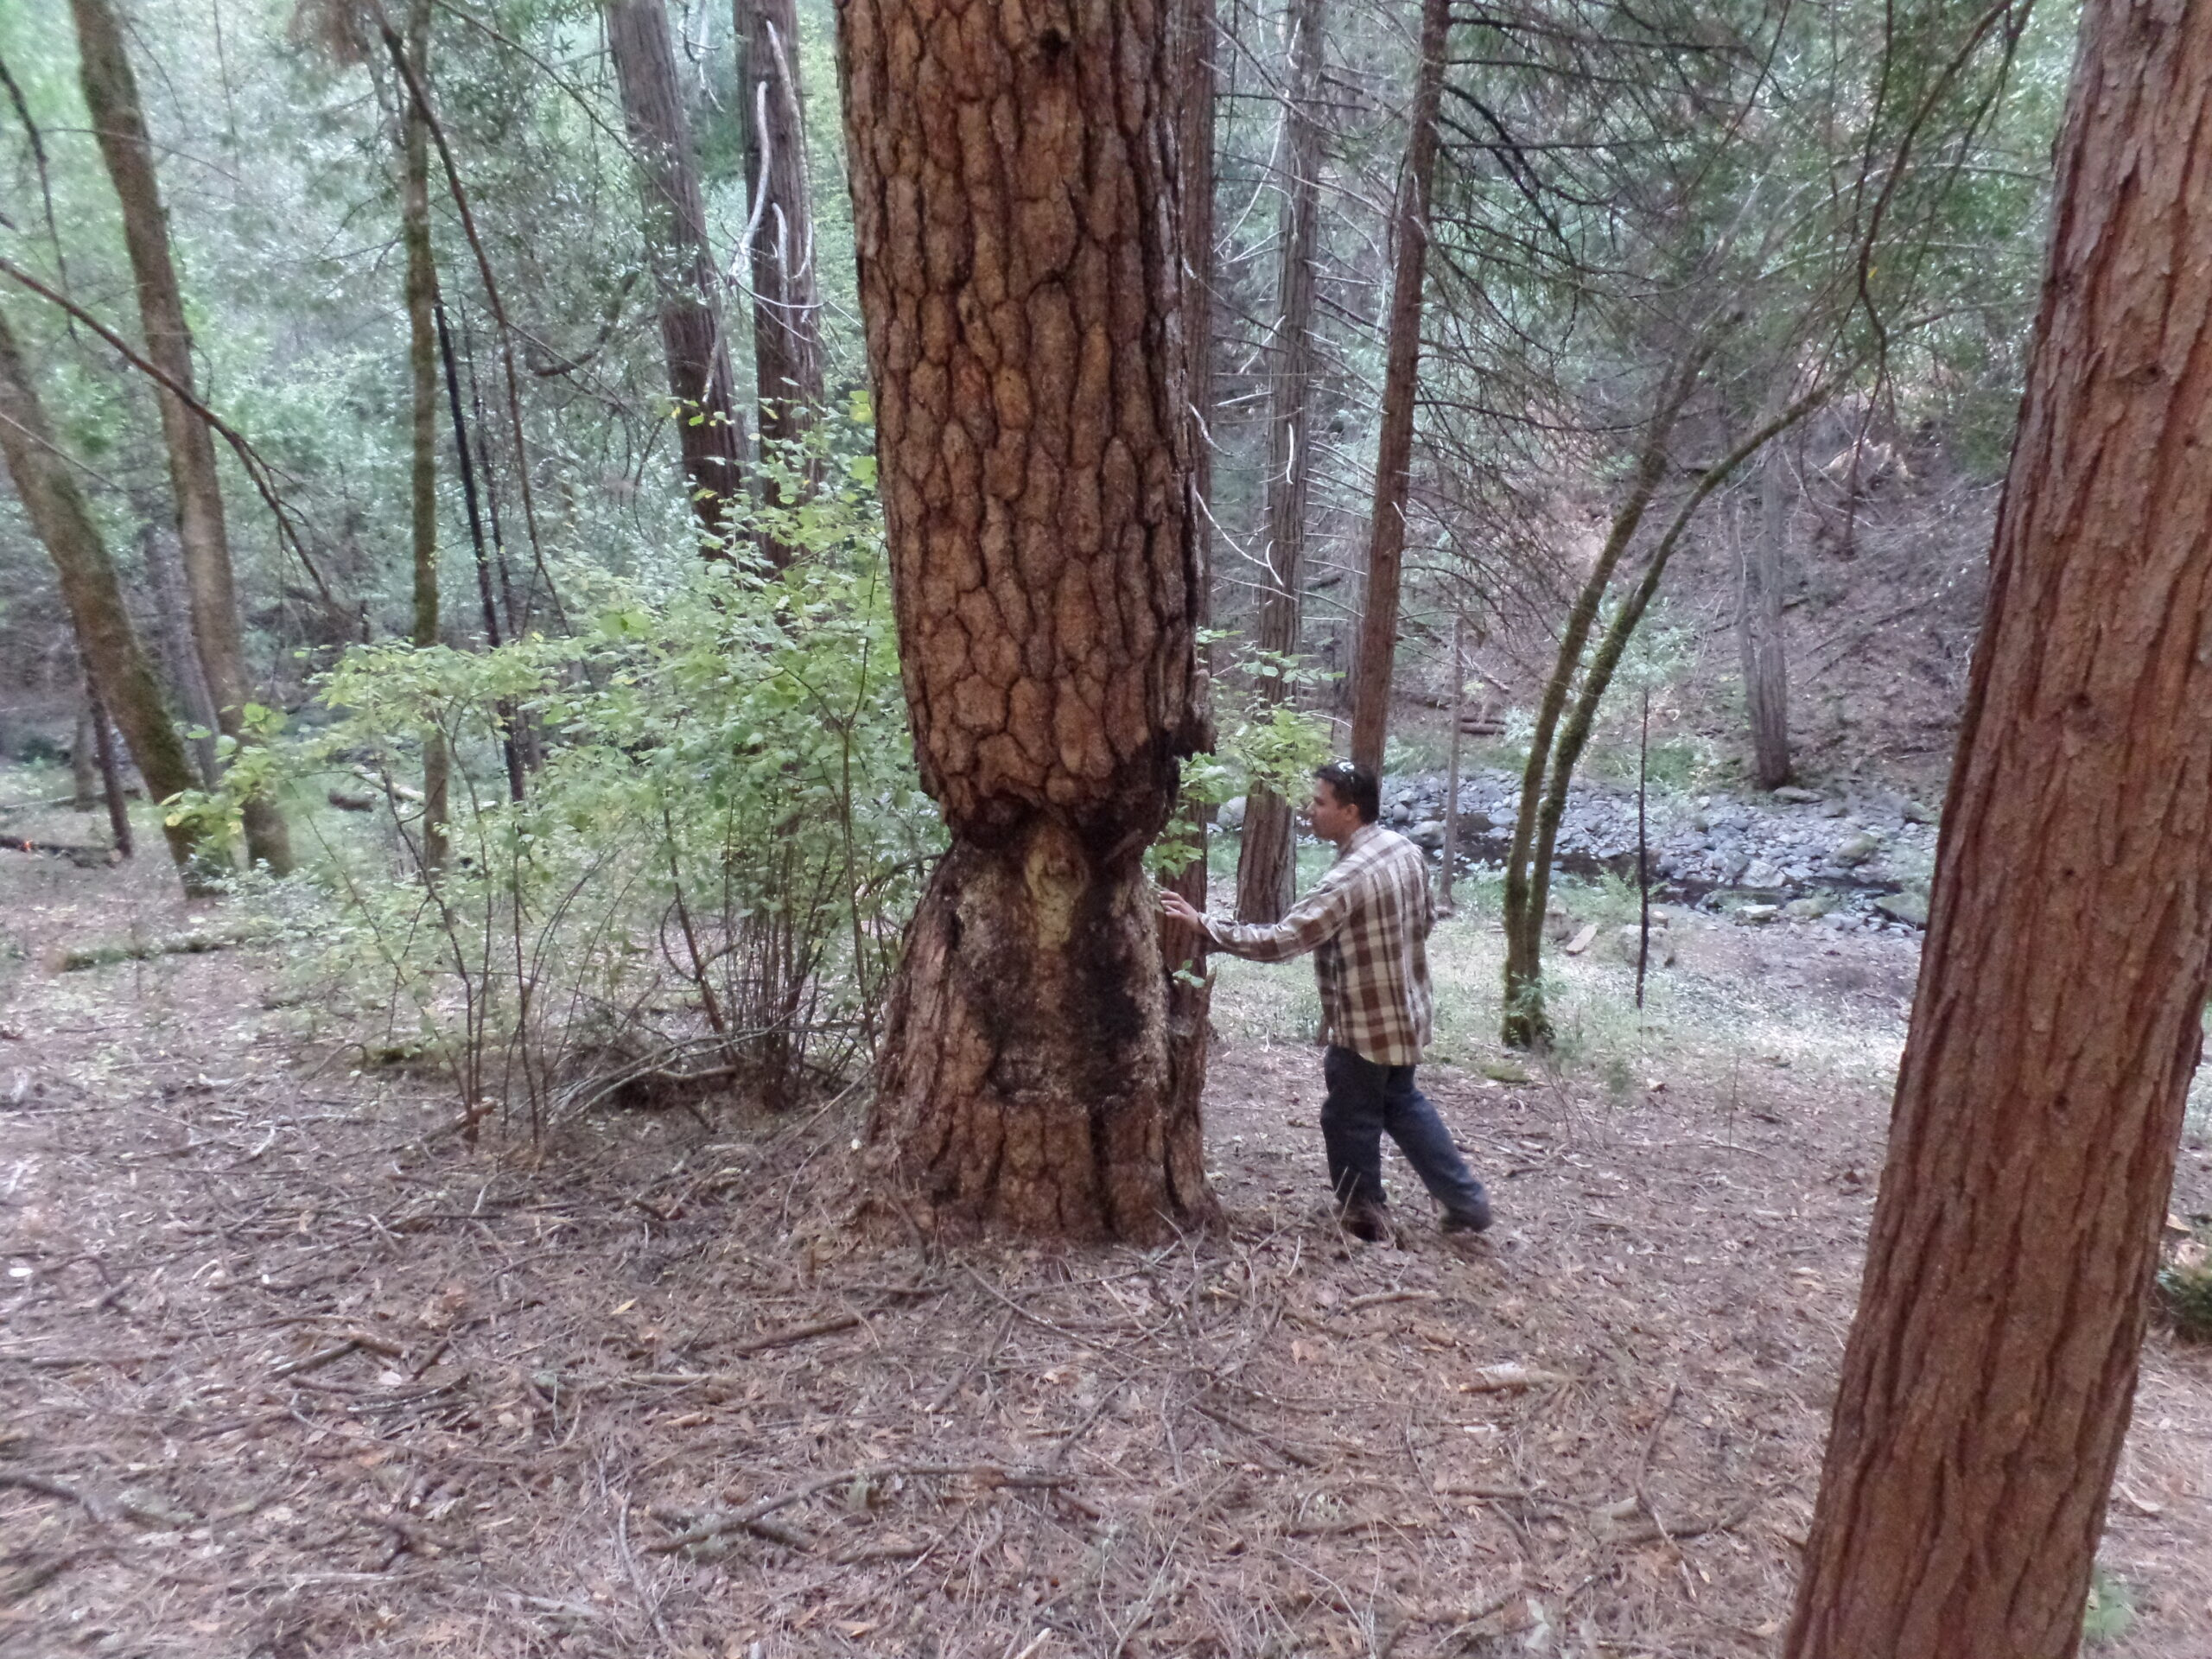 Staff person puts hand on large pine with damage near from trunk